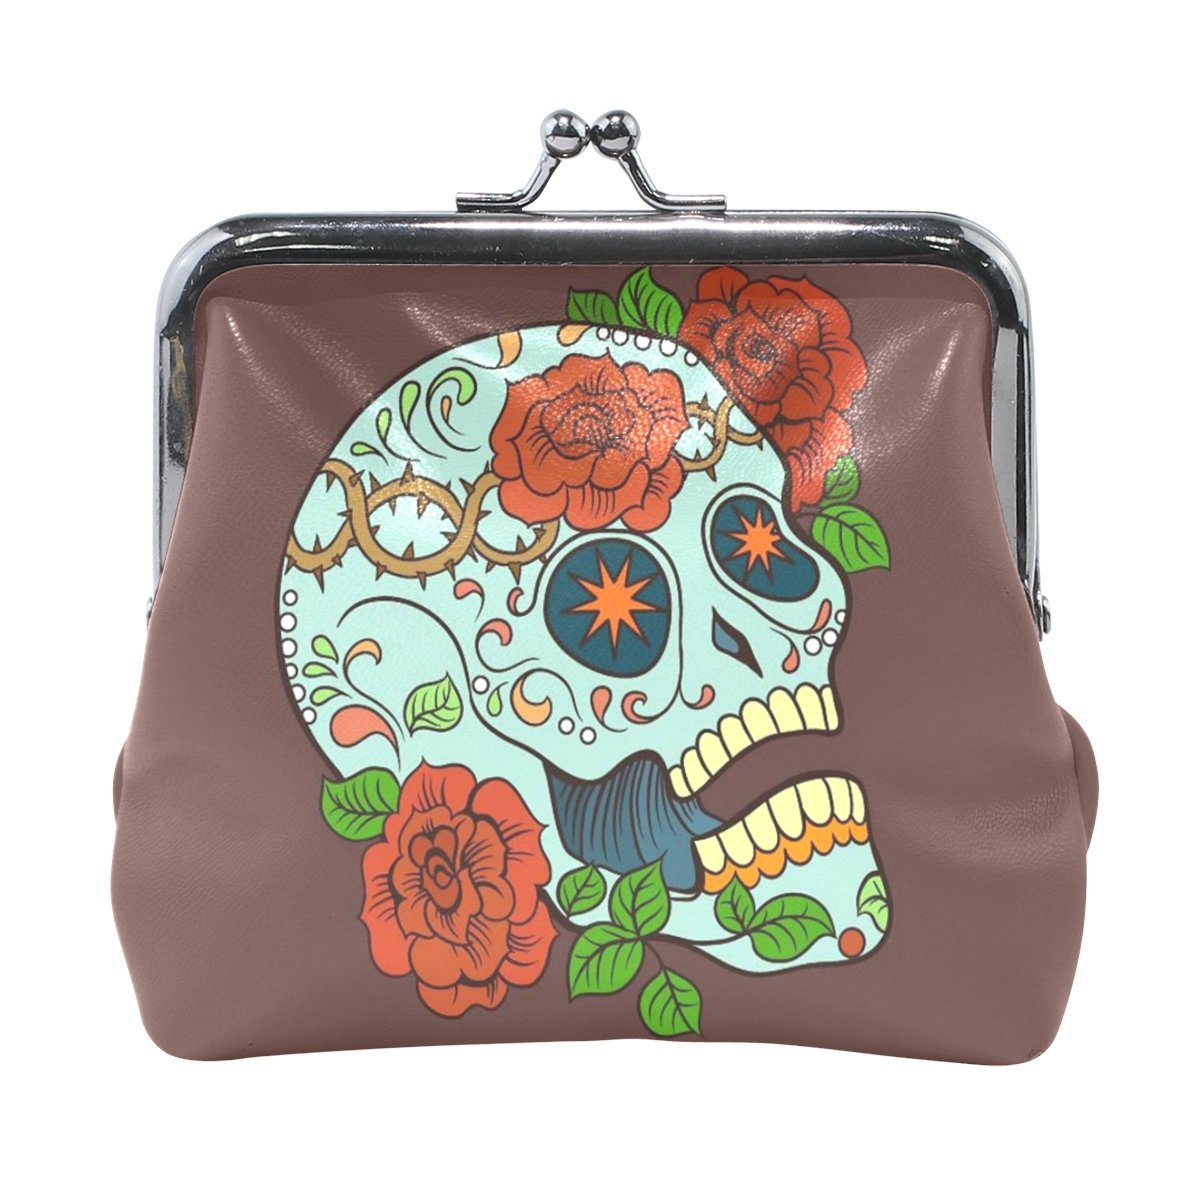 Vipsk mom gift ideas Gothic Rose and Skull PU Leather Wallet Card Holder Coin Purse Clutch Handbag OneSize